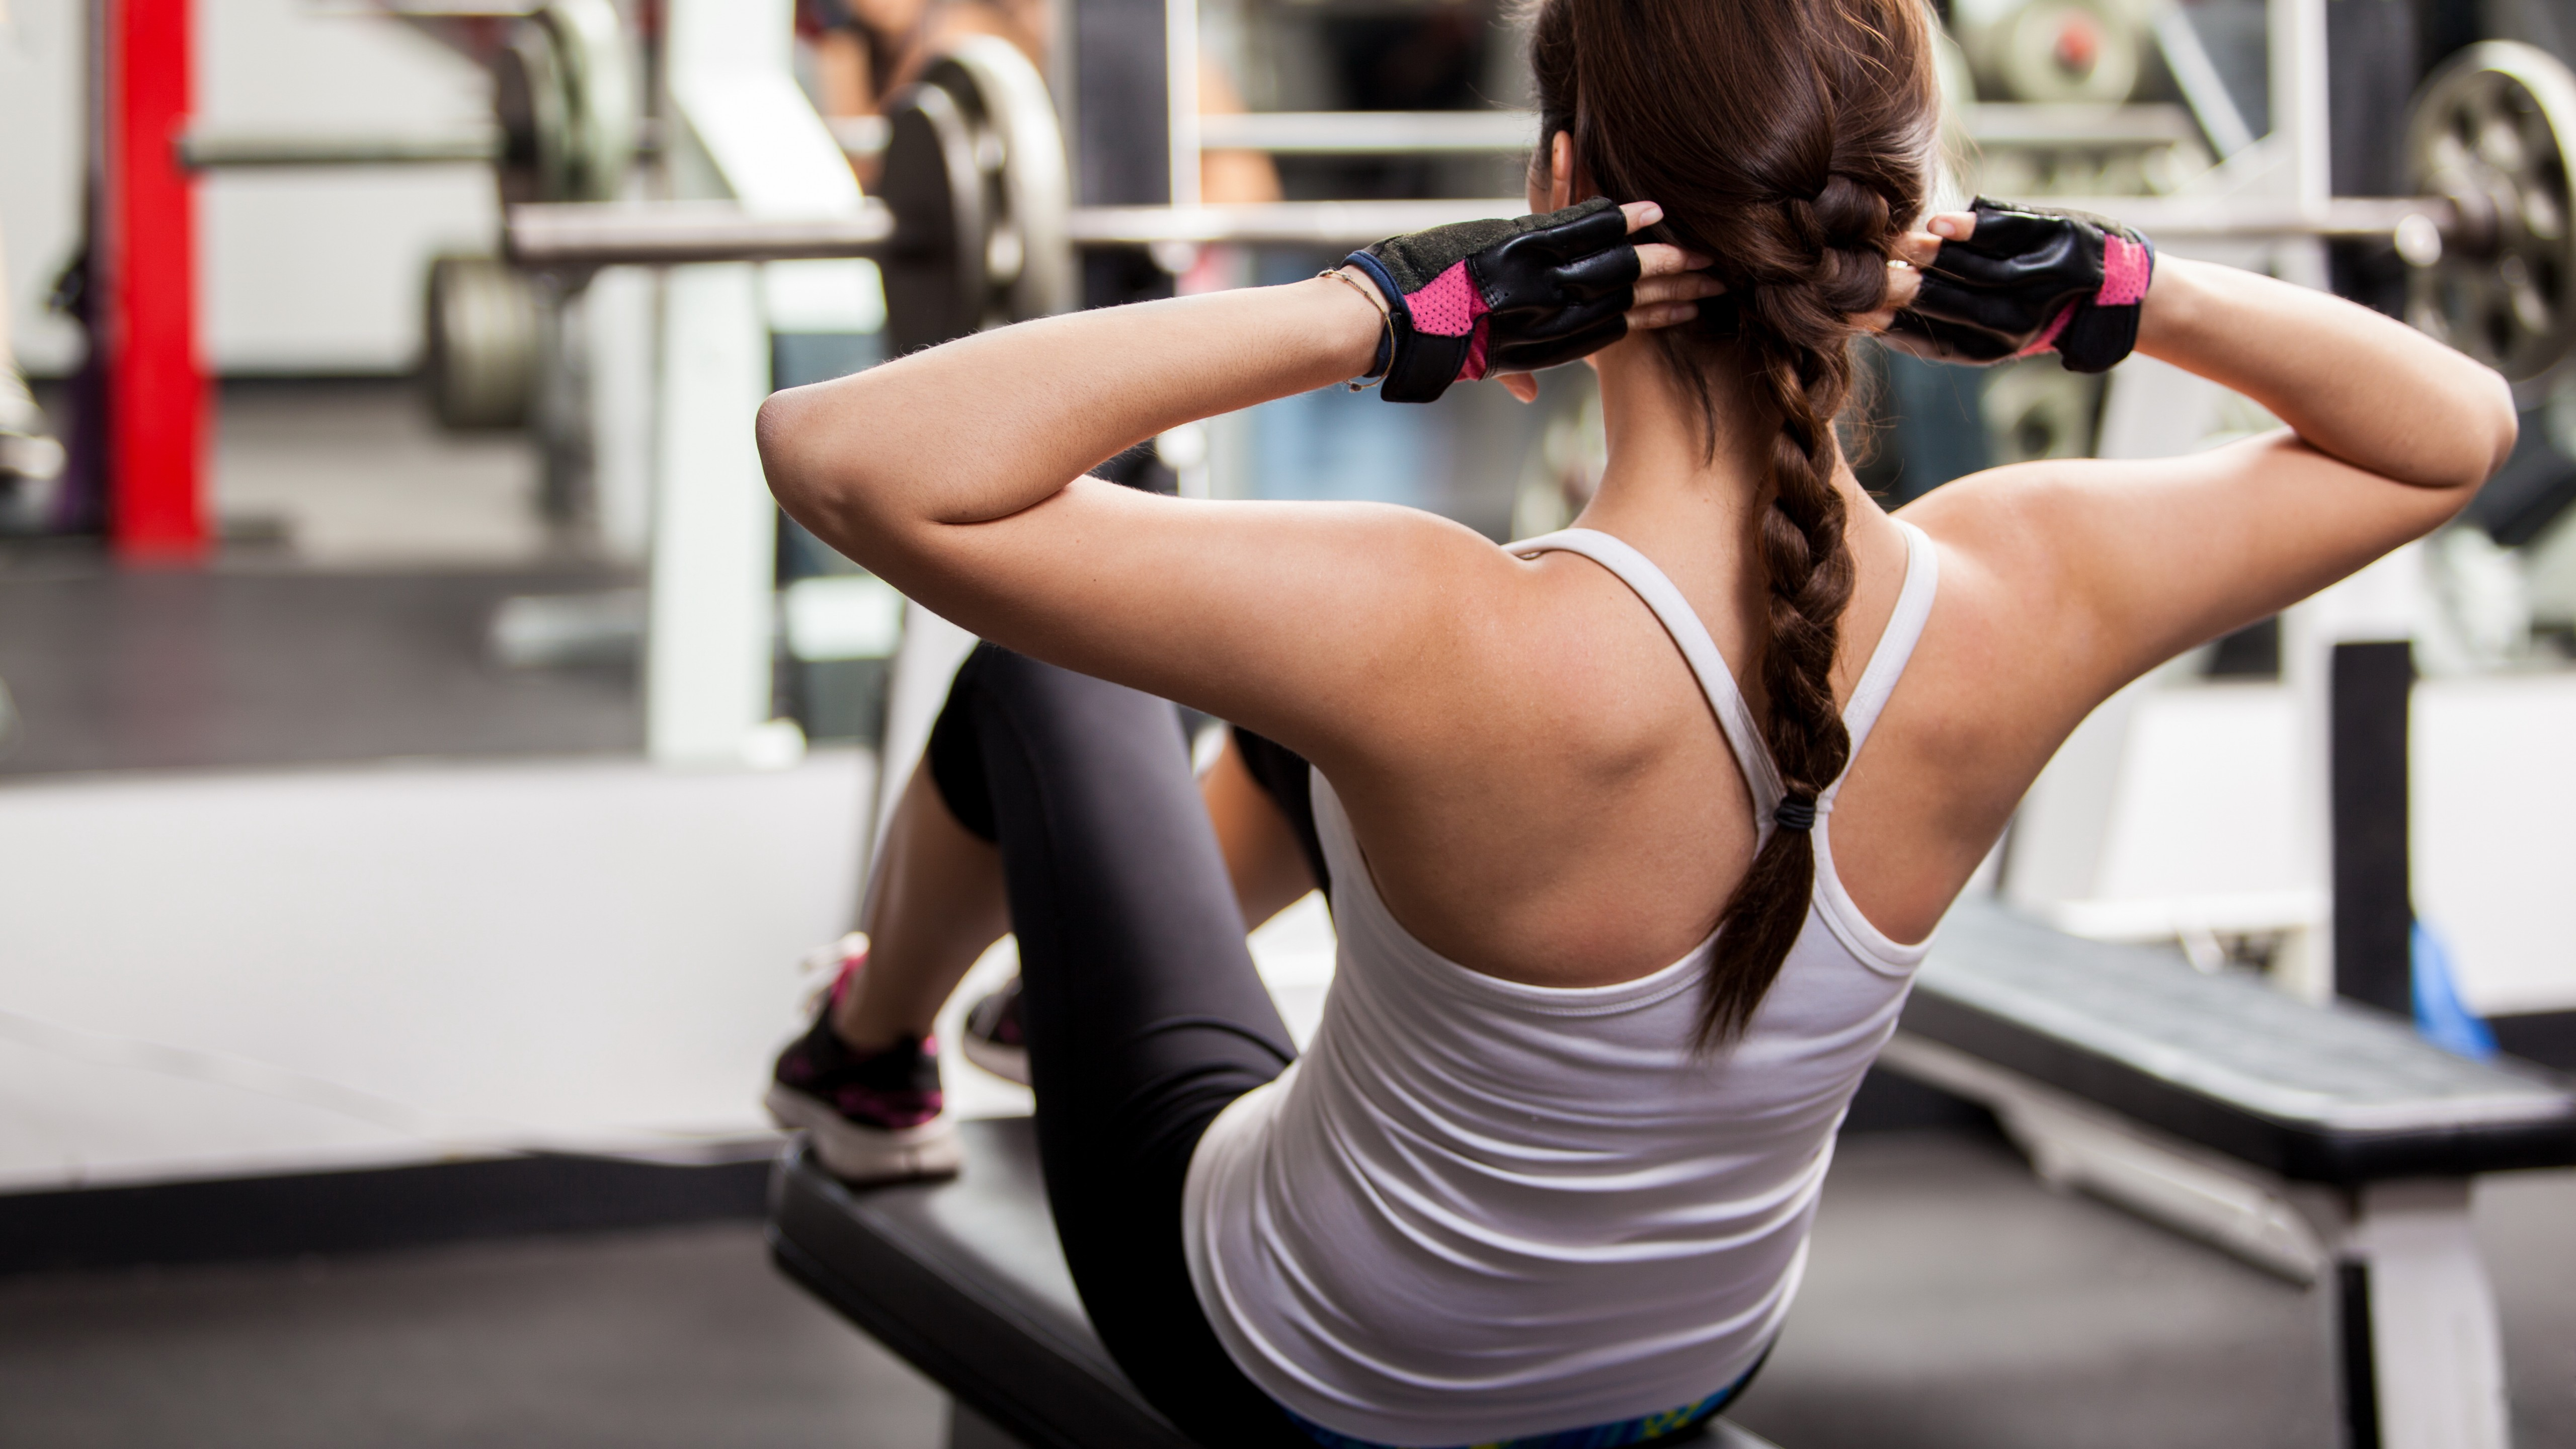 Image result for workout girl pic,nari